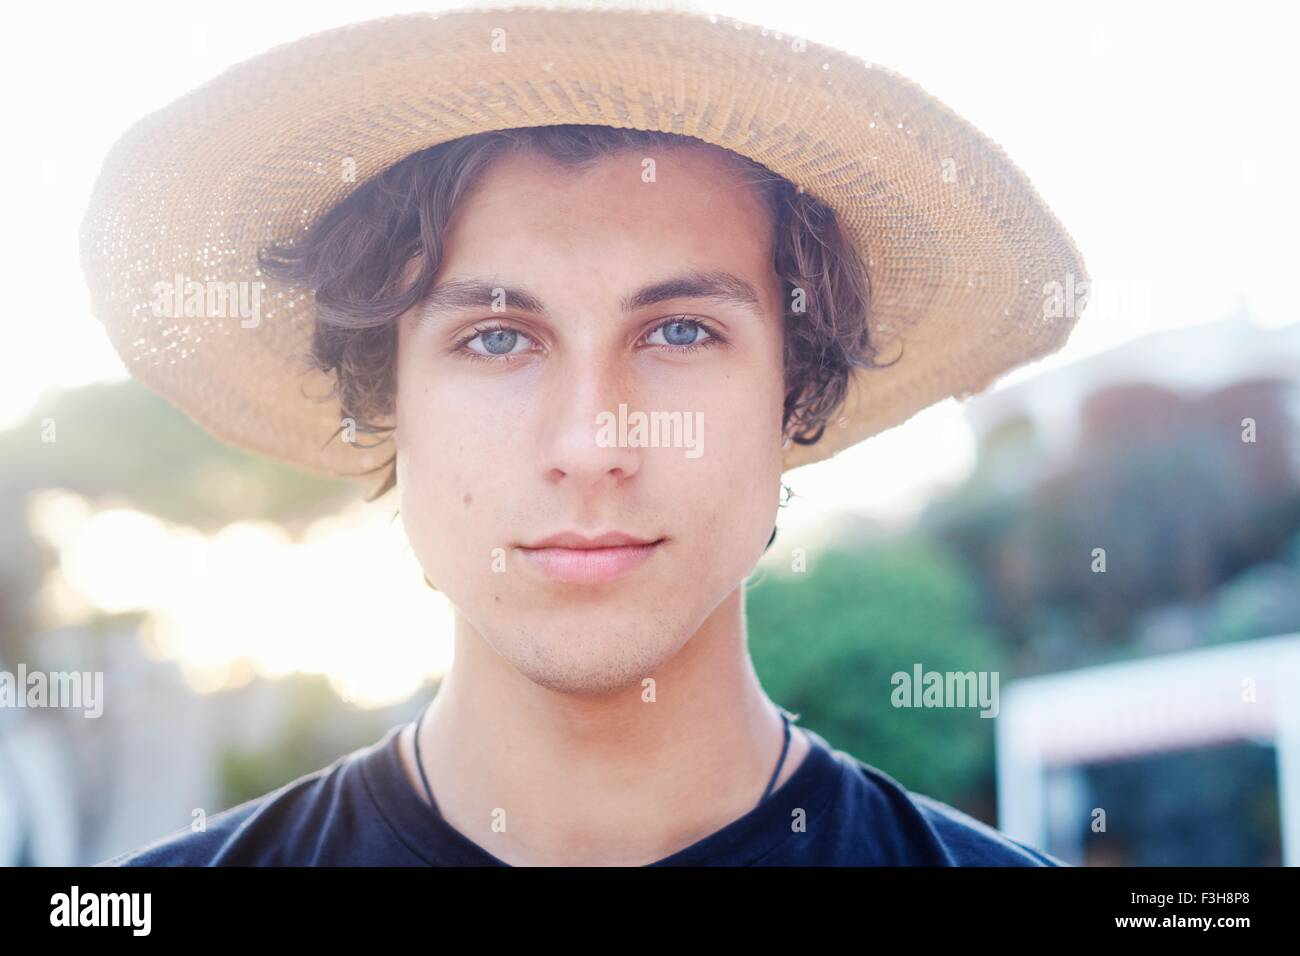 Close up portrait of young man wearing sunhat at beach Photo Stock